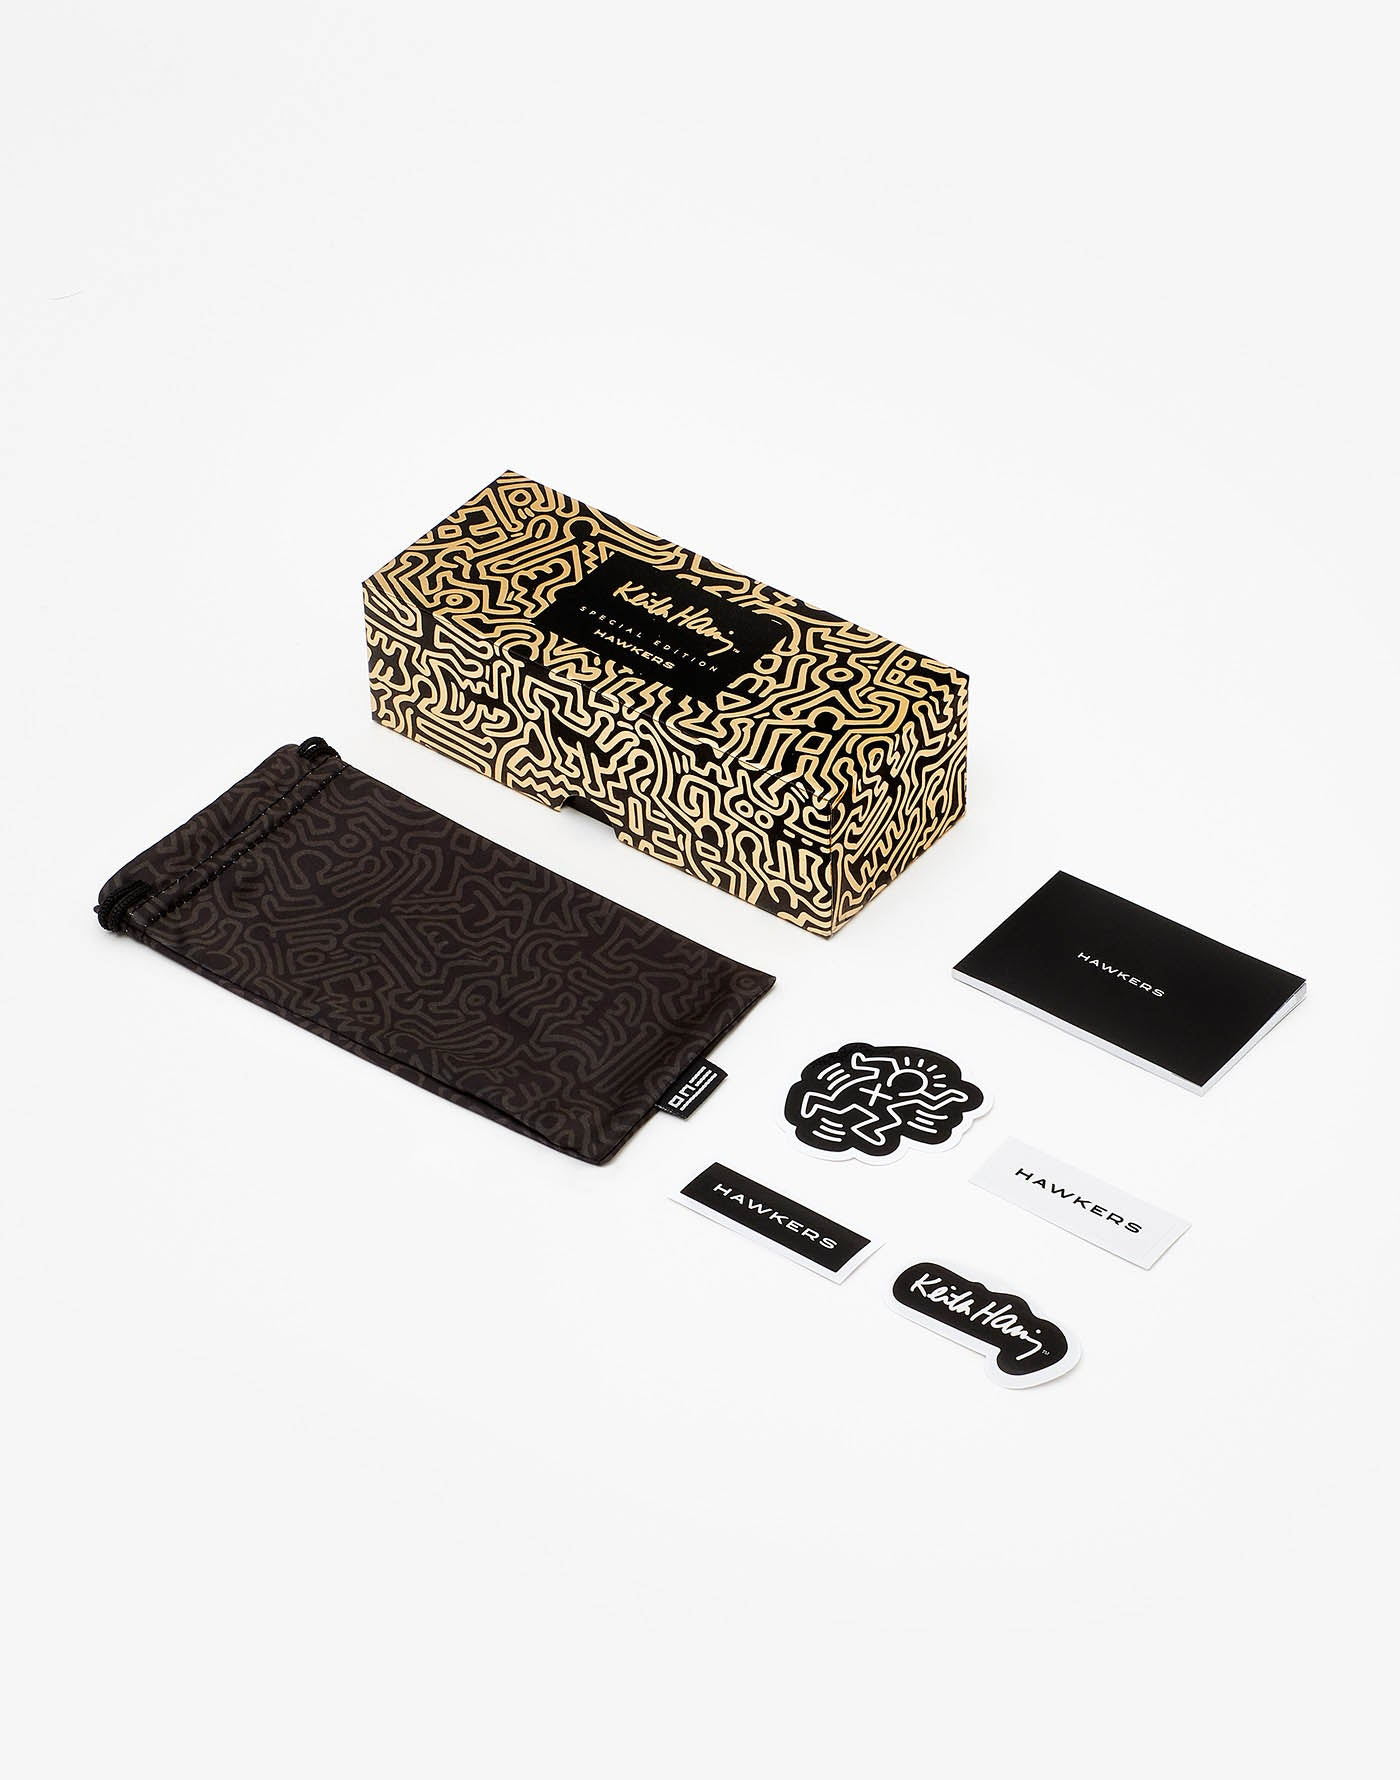 Keith Haring x Hawkers · Bicolor Gold